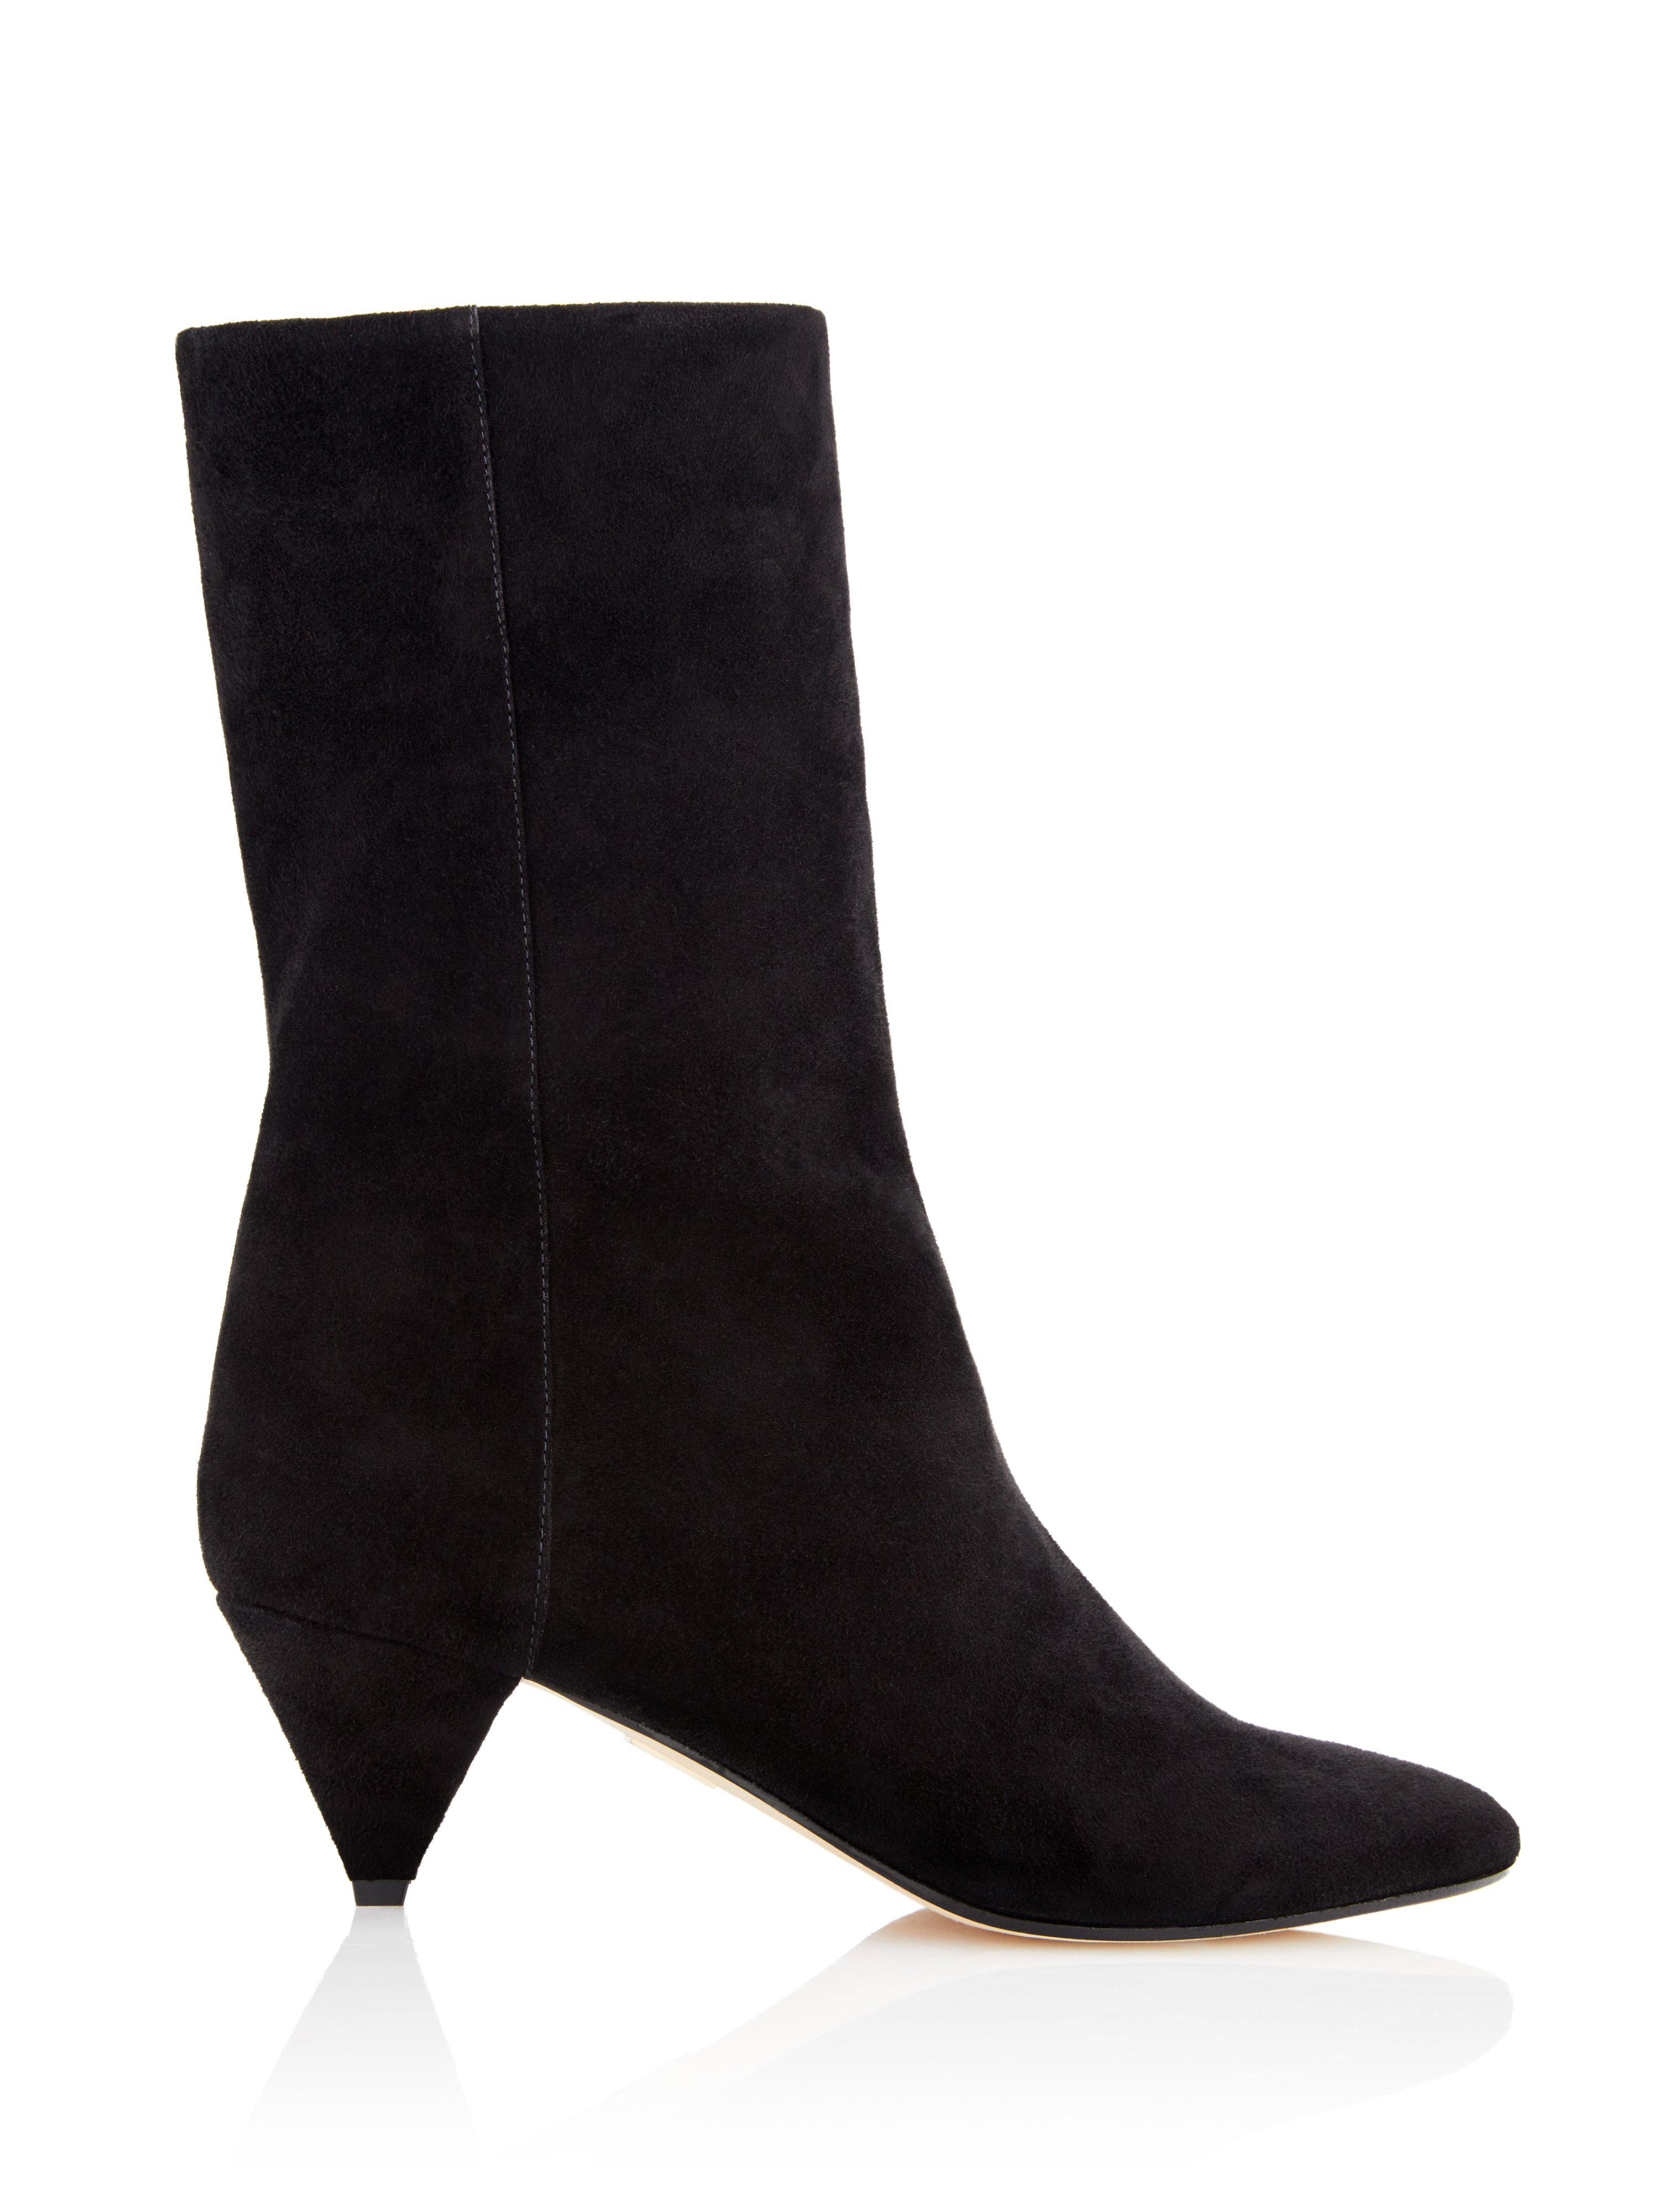 Kindred Mid Calf 55 - Suede 5